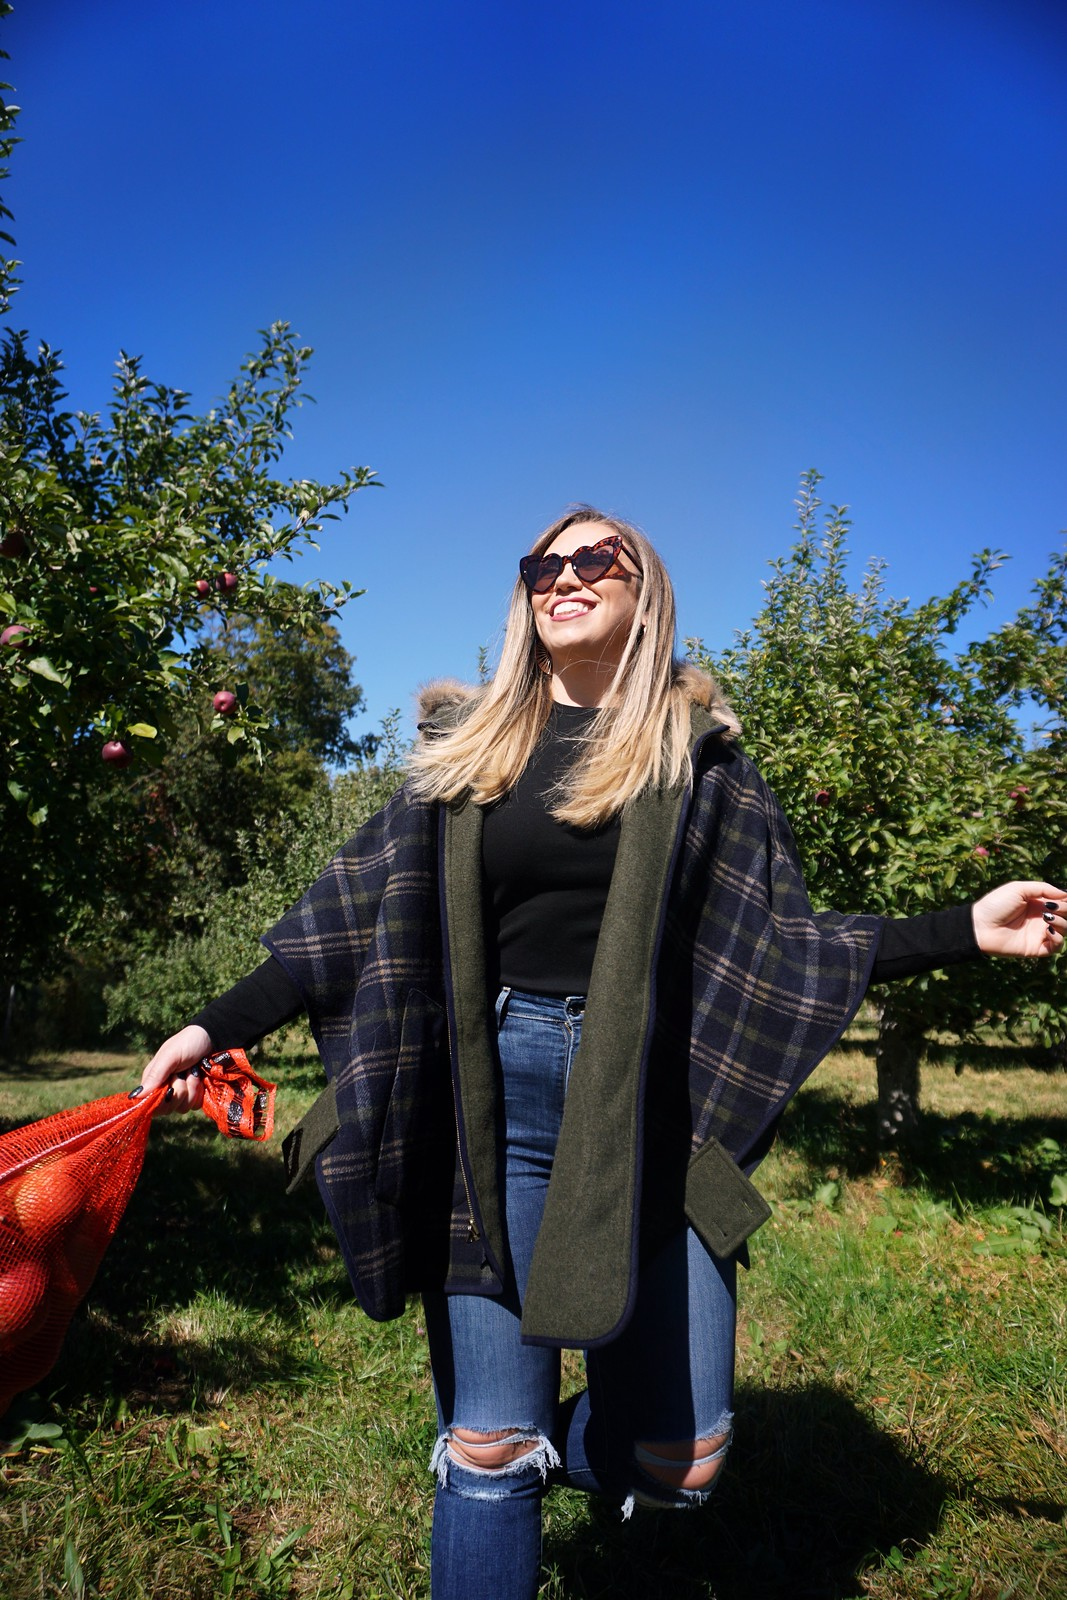 The Best Apple Orchards Close to New York City | Fishkill Farms New York | Apple Picking Outfit | Plaid Cape